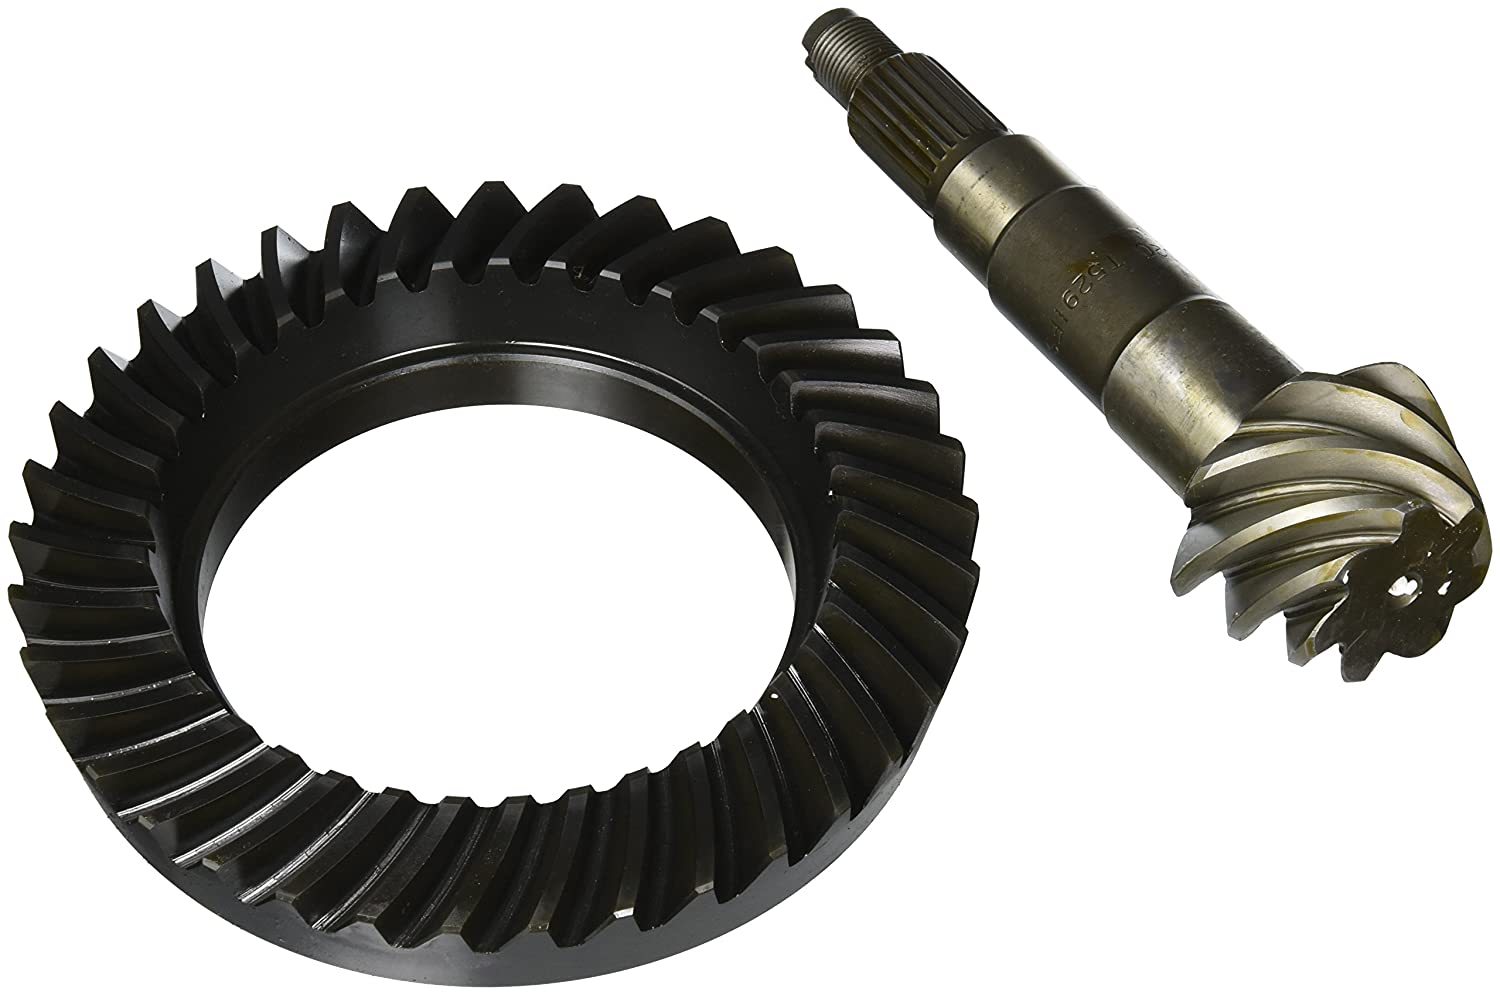 TOYOTA 7.5 Style, 5.29 Ratio, Front Motive Gear T529IFS Ring and Pinion